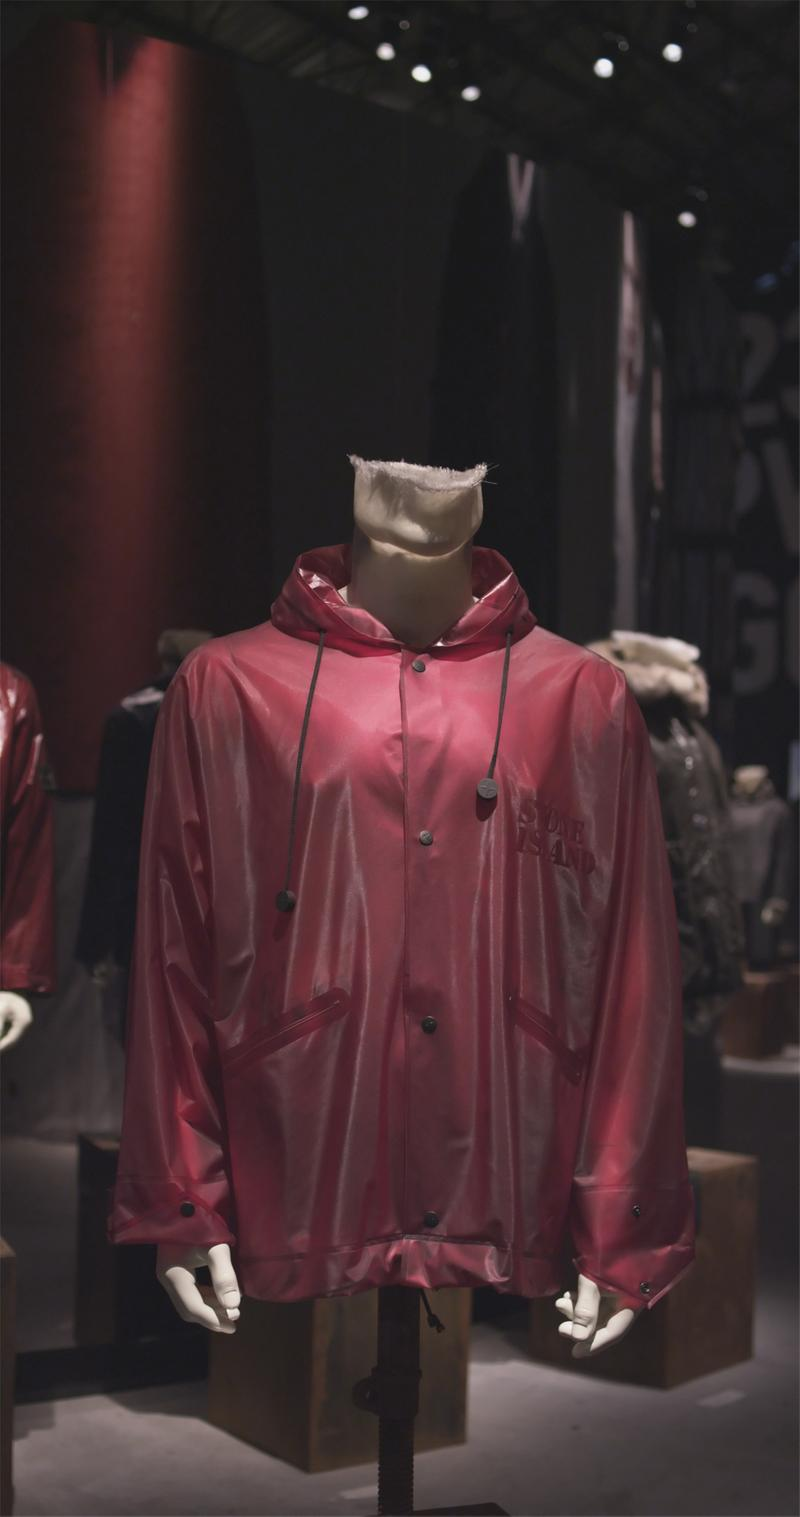 Red parka with hood and button closure displayed on mannequin bust